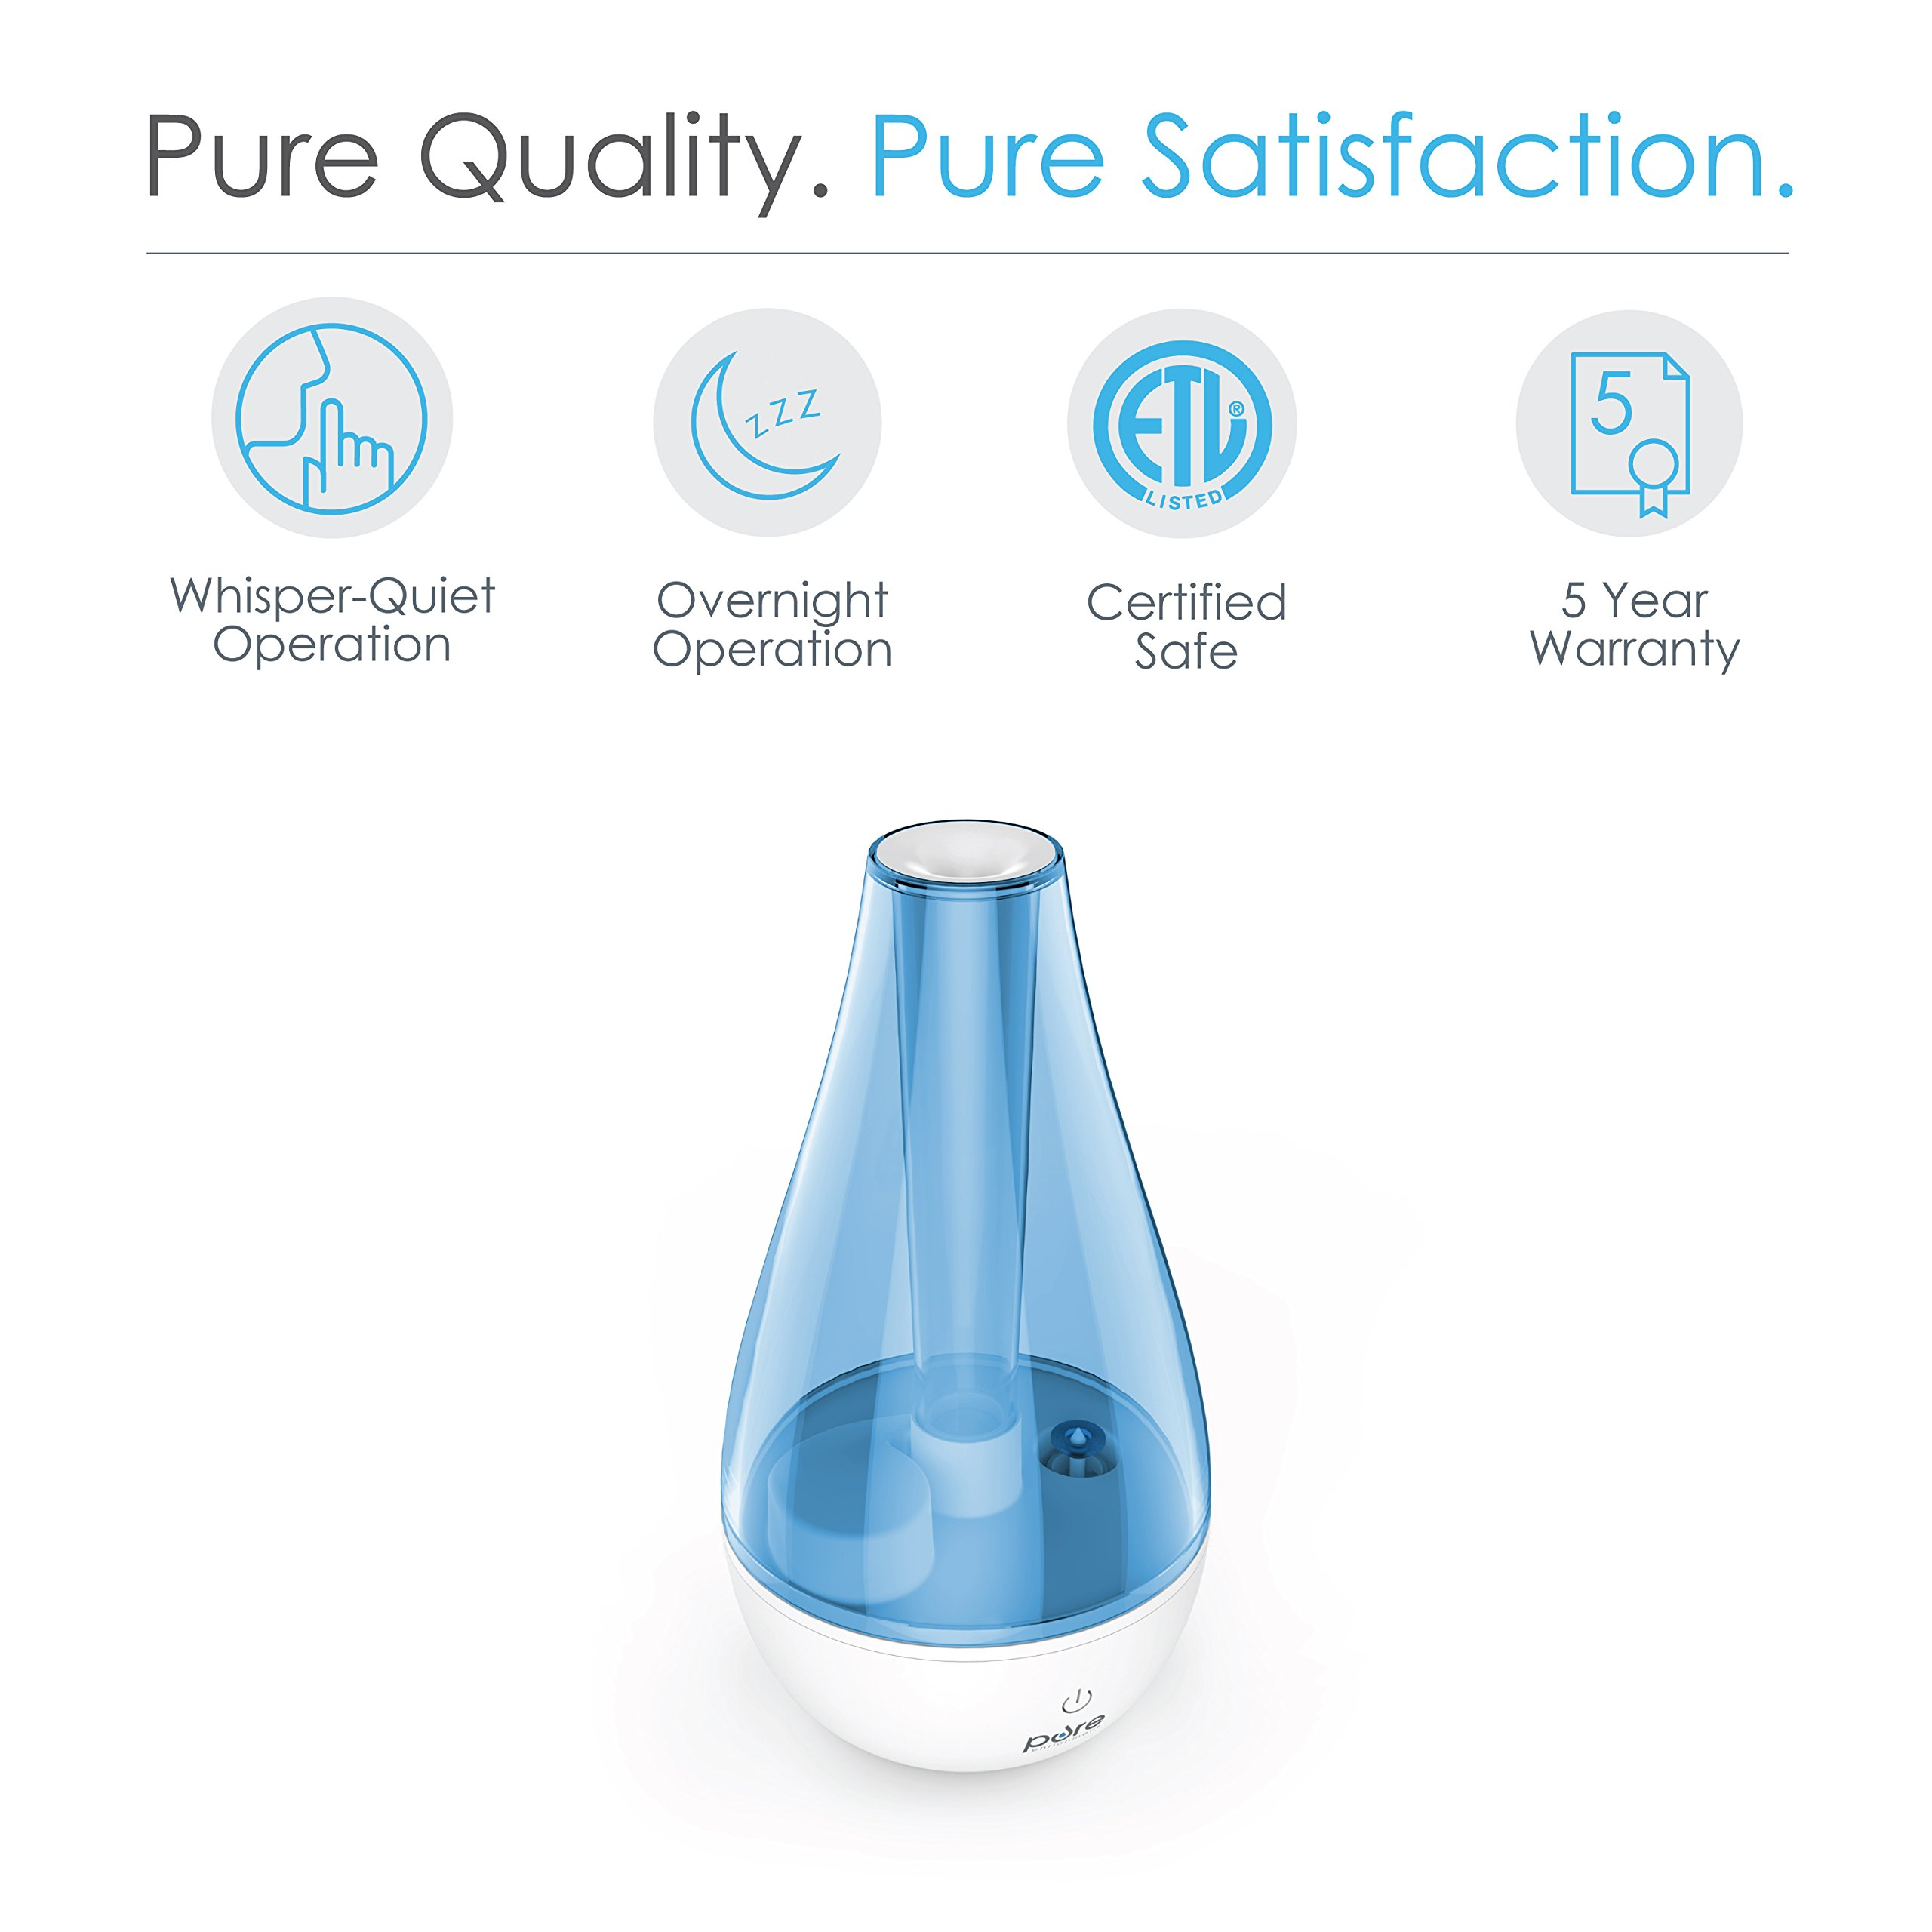 MistAire Studio Ultrasonic Cool Mist Humidifier for Small Rooms – Portable Humidifying Unit Ideal for Travel with High & Low Mist Settings and Optional Night Light by Pure Enrichment (Image #3)